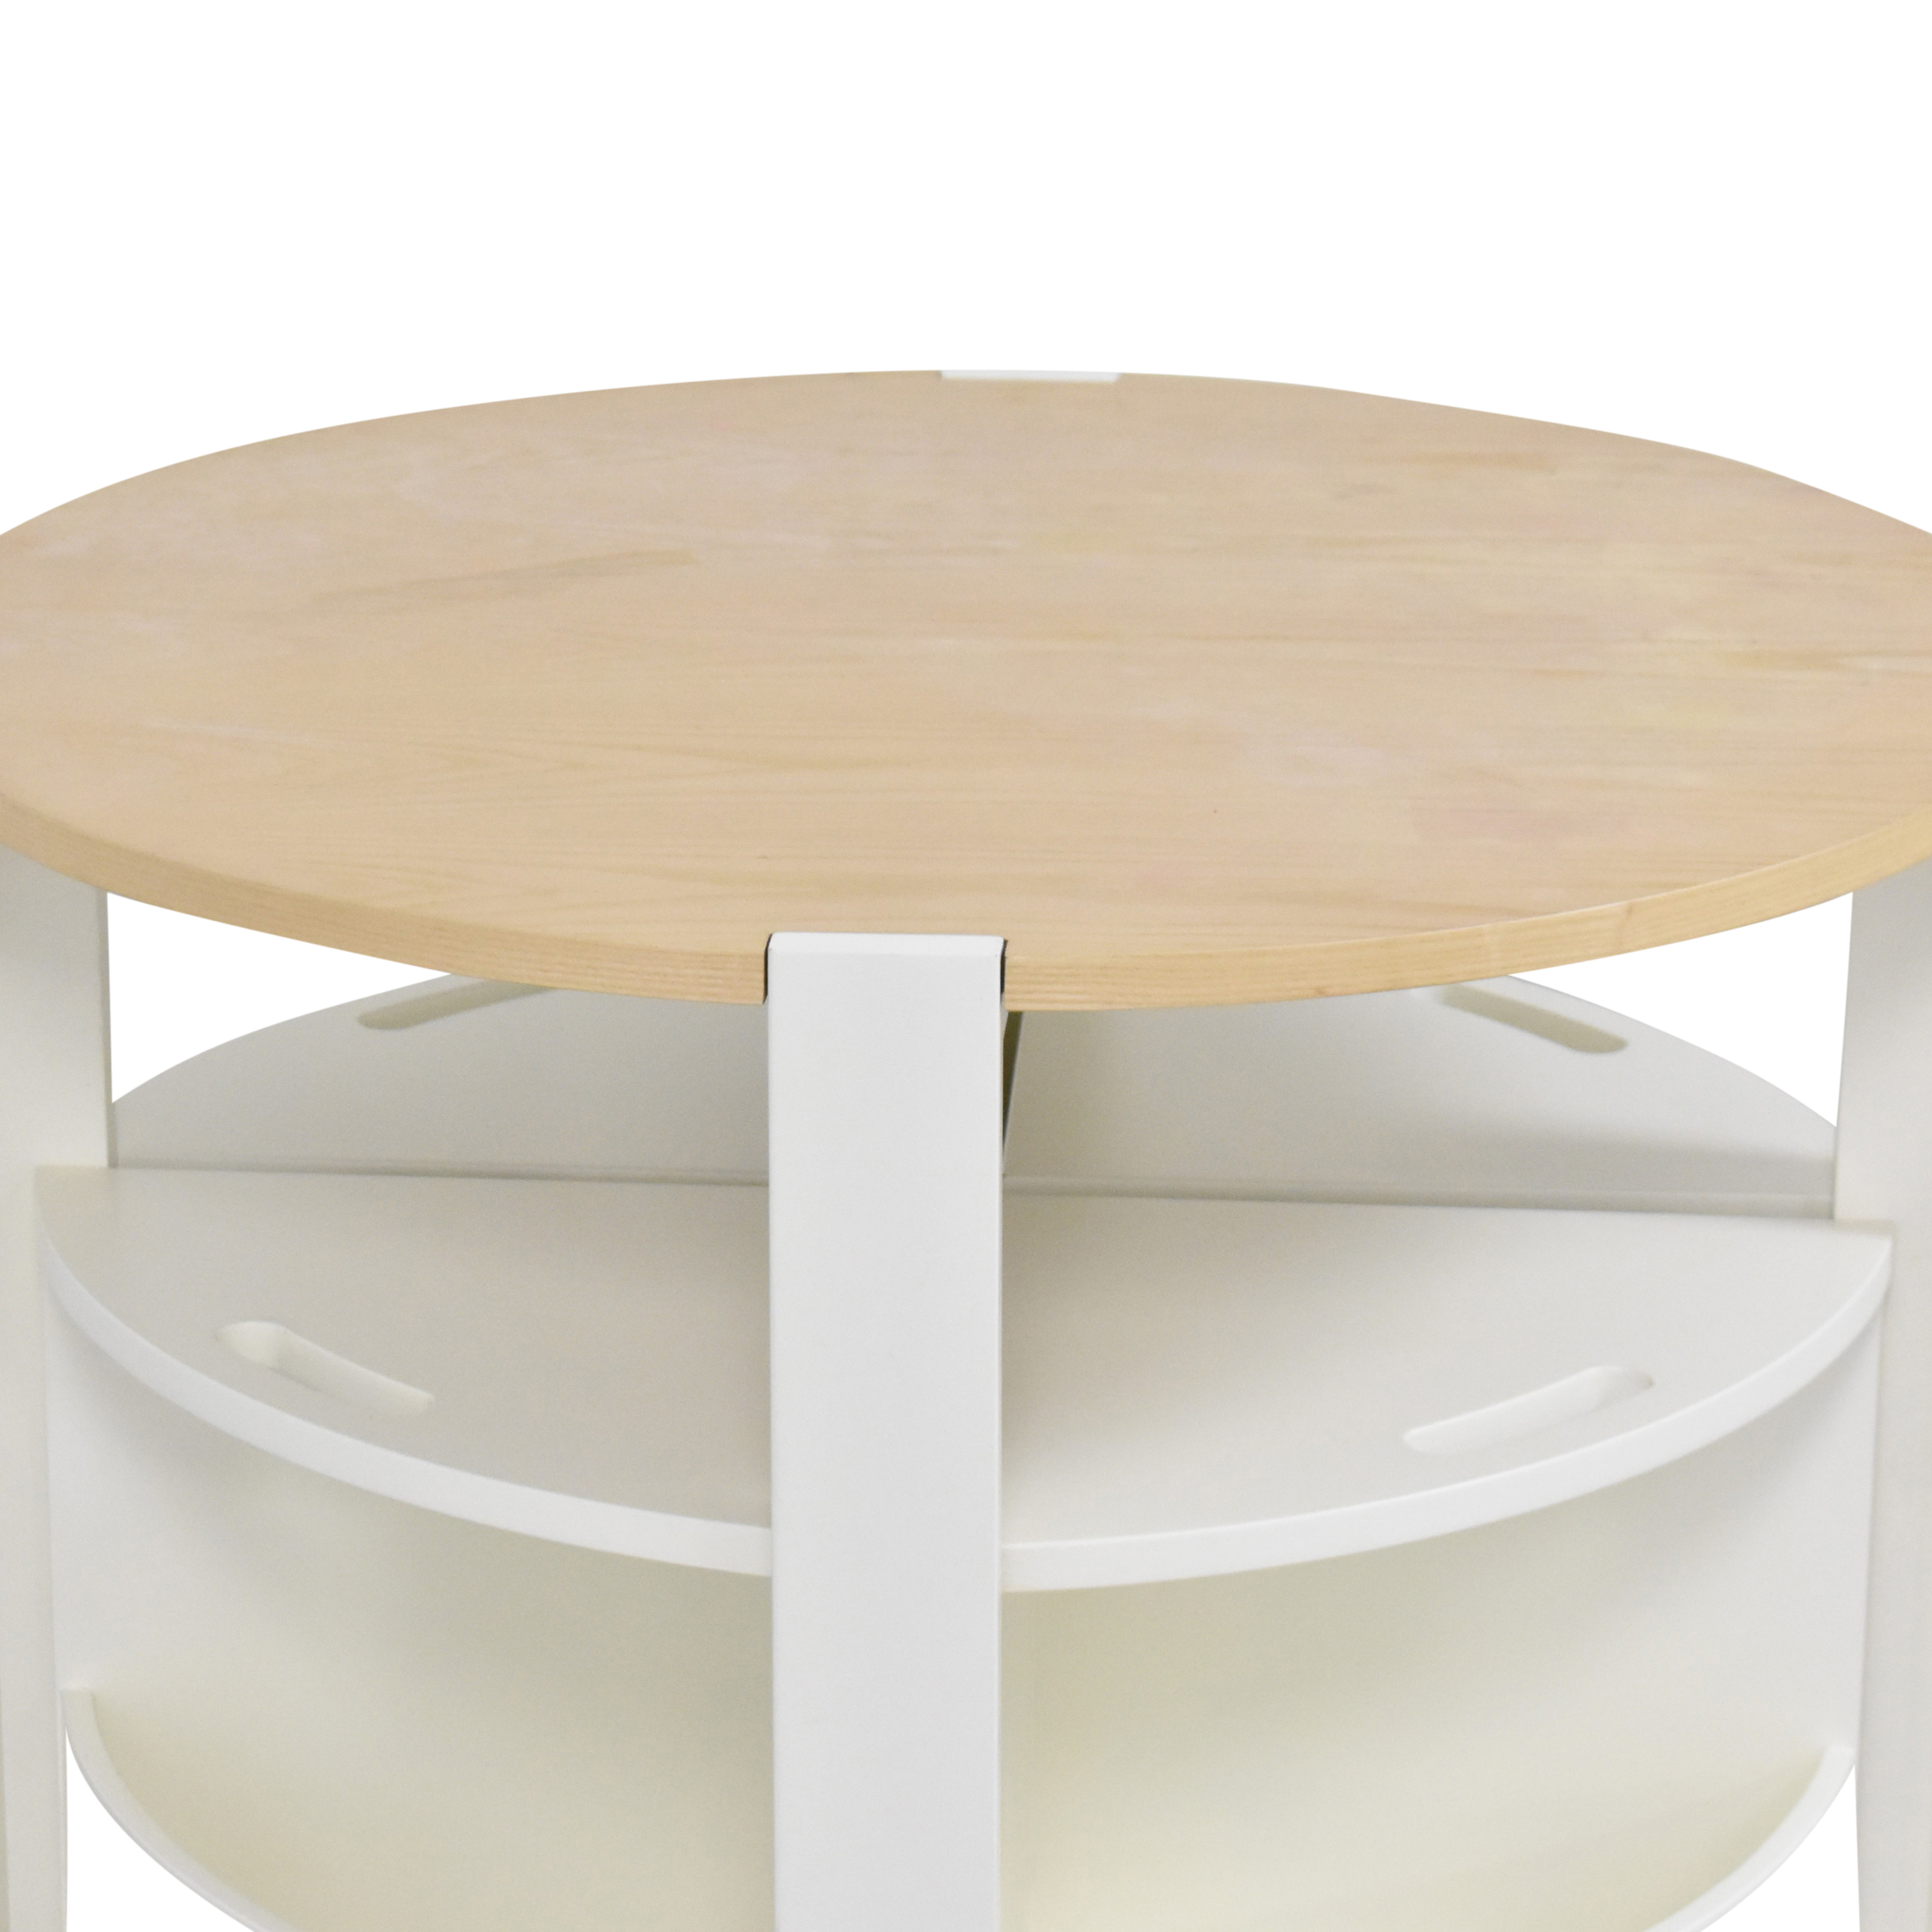 buy Crate & Barrel Nesting Play Table and Chairs Crate & Barrel Tables